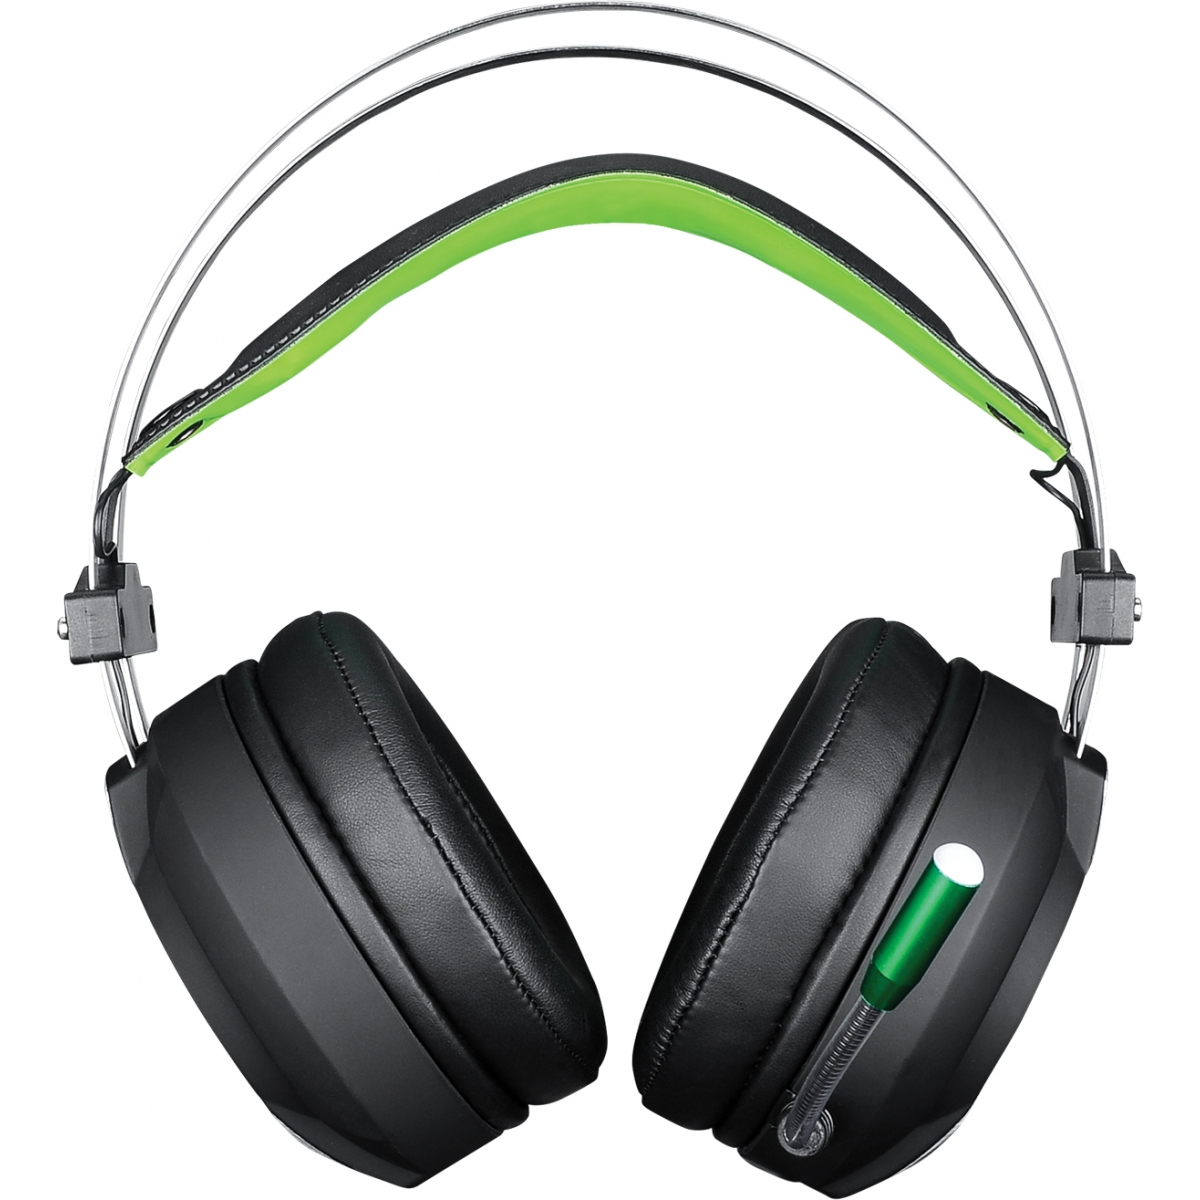 Headset Gamer DAZZ Savage 7.1 625131 Preto/Verde